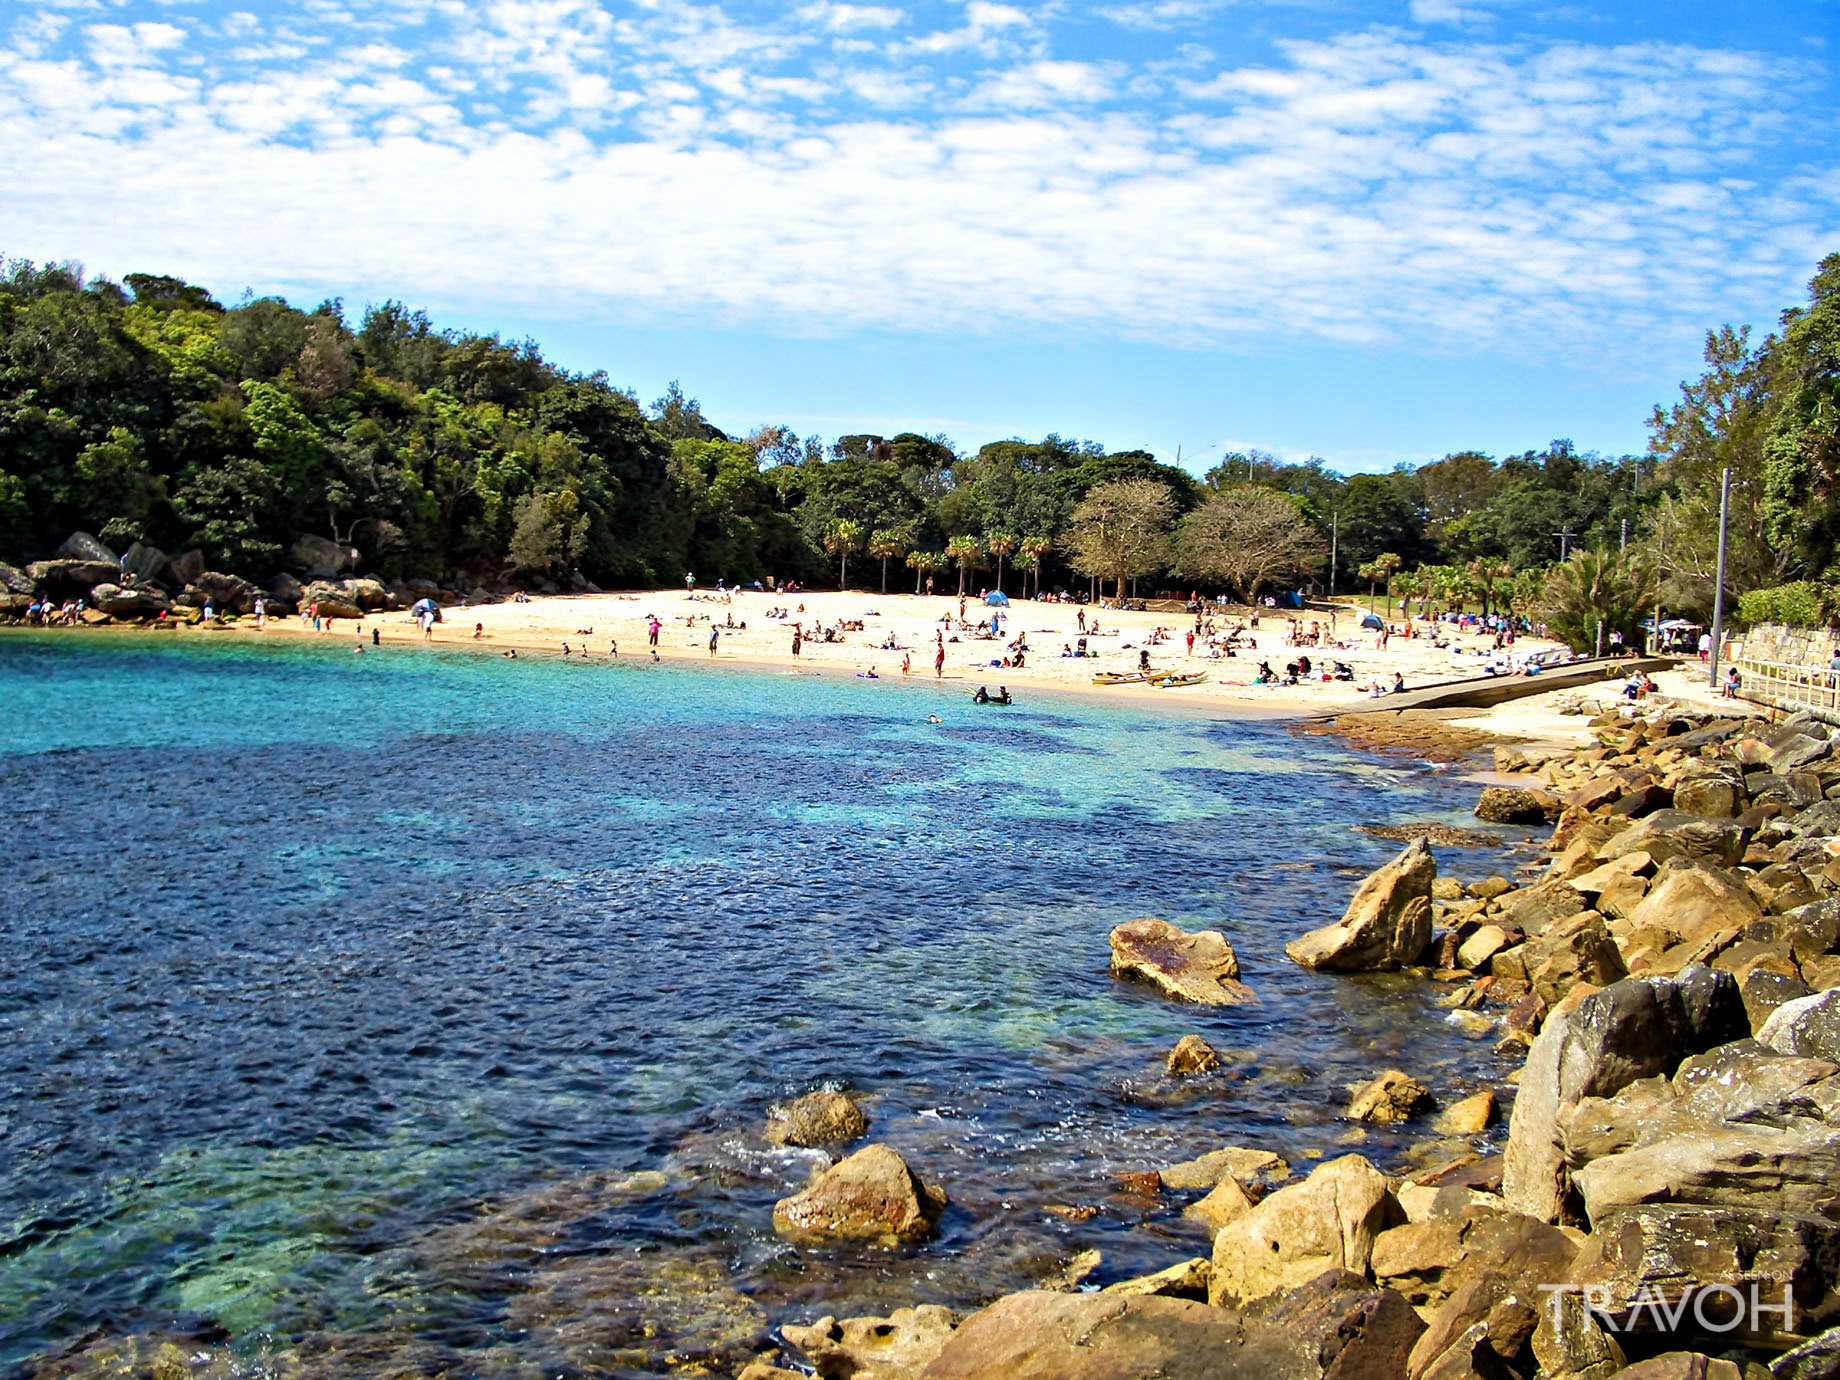 Shelly Beach – Exploring 10 of the Top Beaches in Sydney, Australia